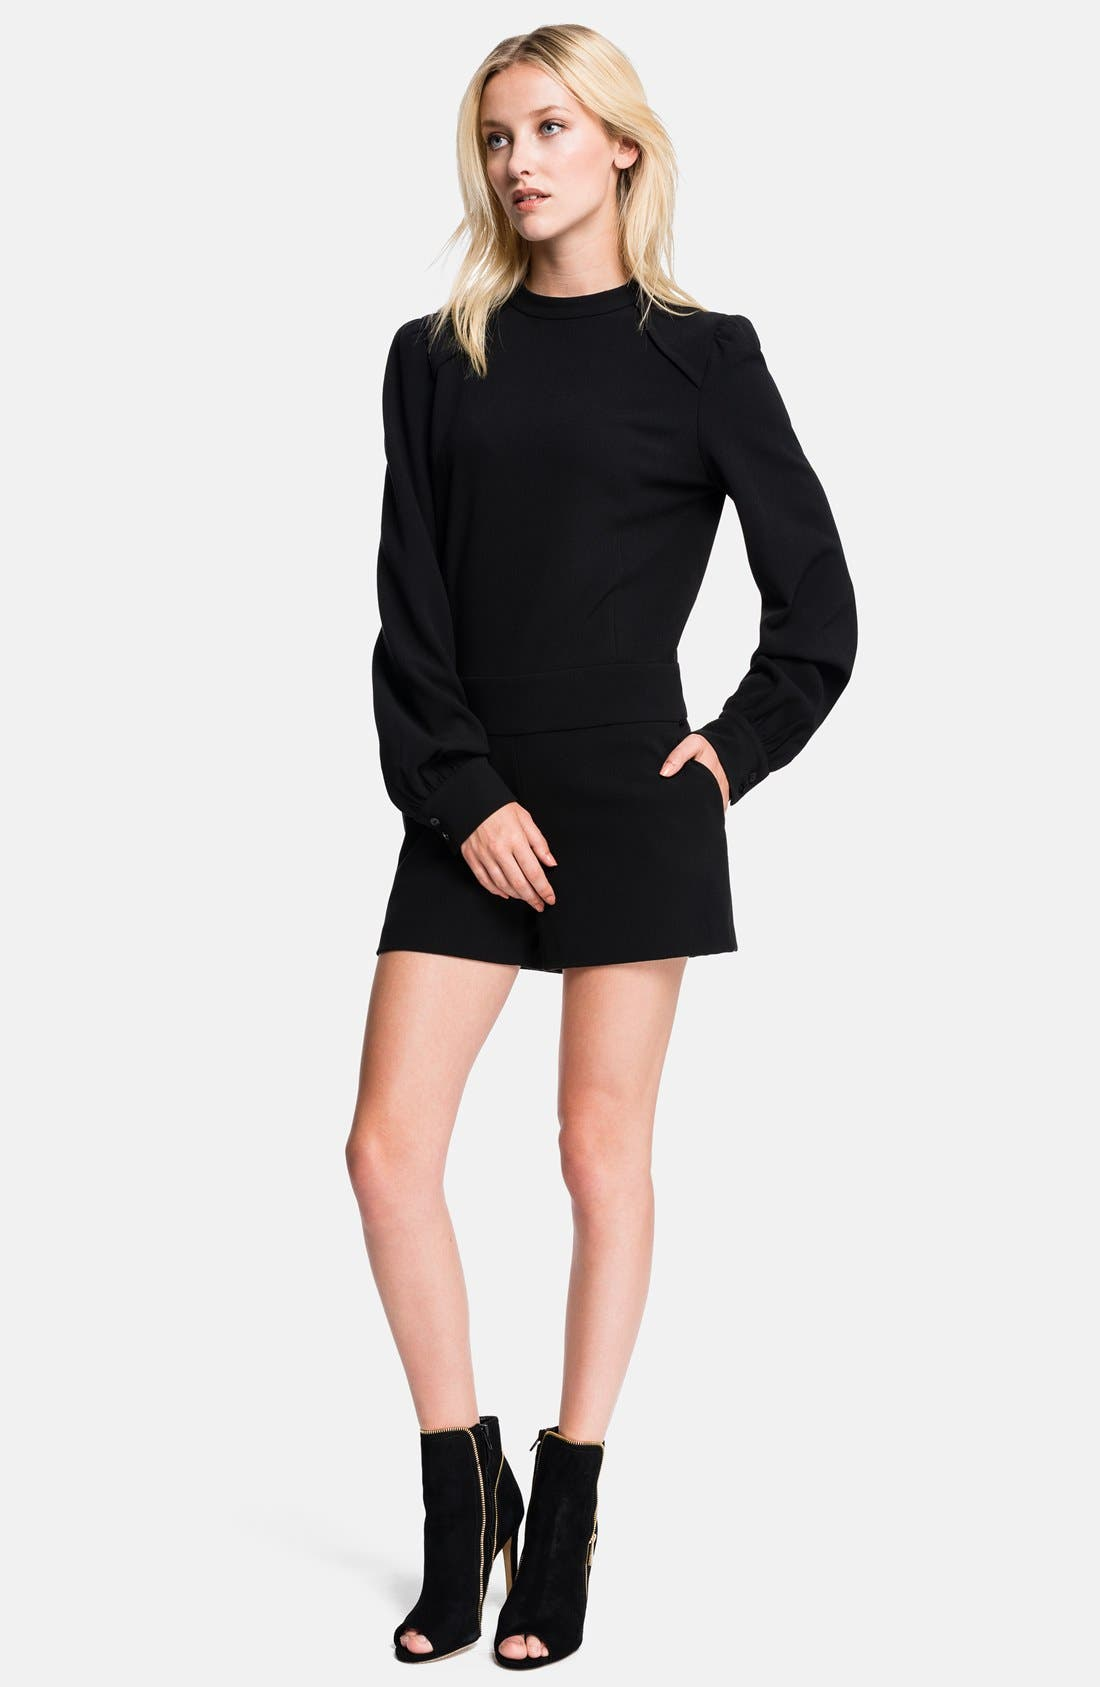 Main Image - 1.STATE Long Sleeve Romper